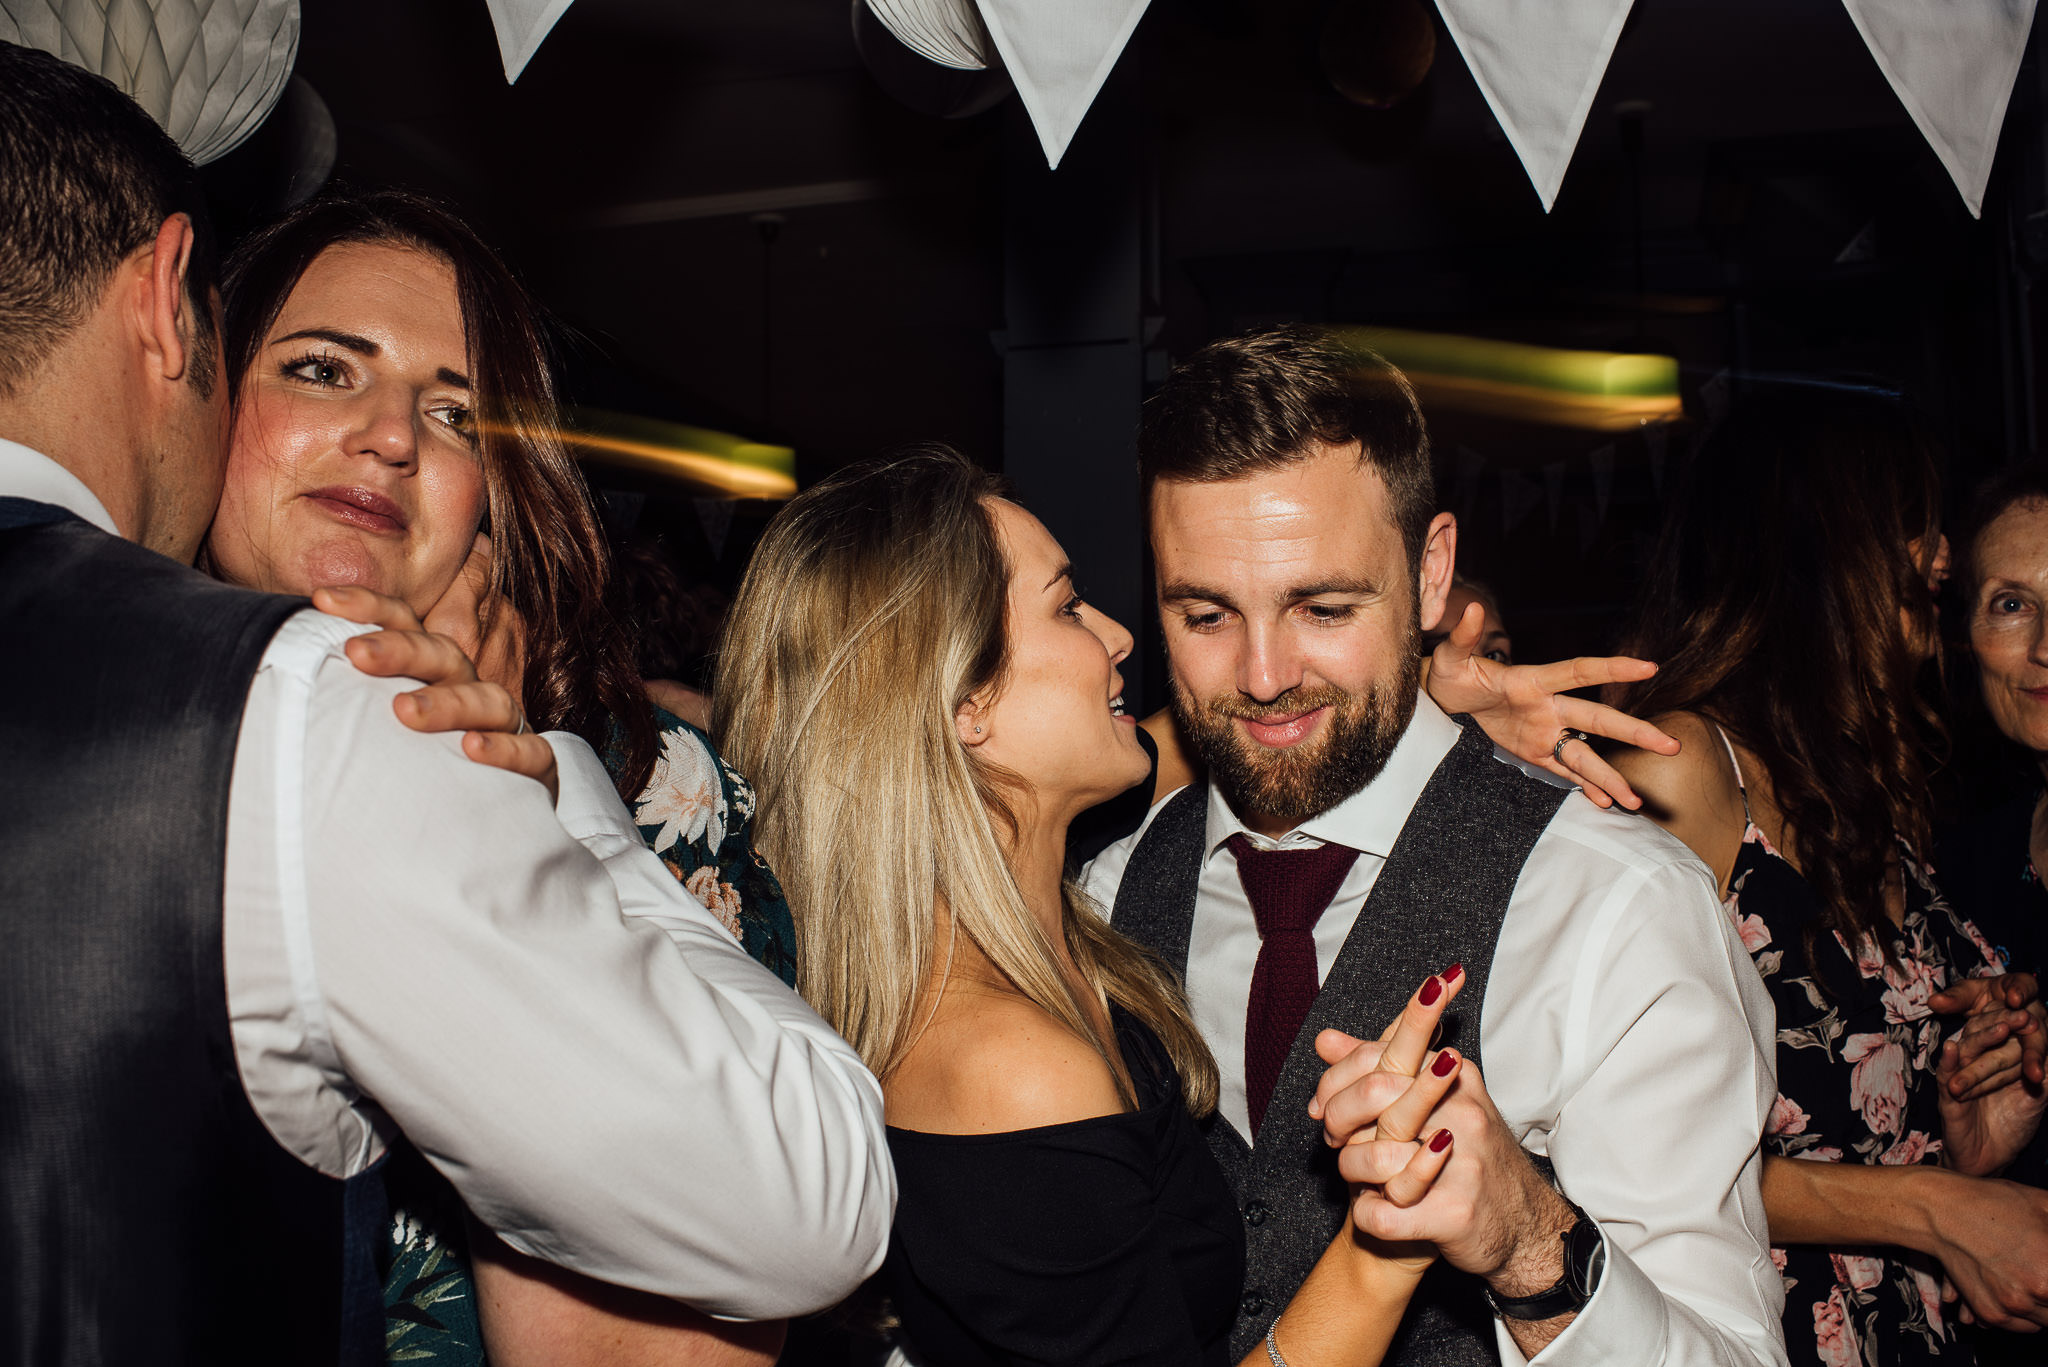 Dancing in the Londesborough pub wedding in stoke newington town hall wedding by creative and alternative london wedding photographer the shannons photography